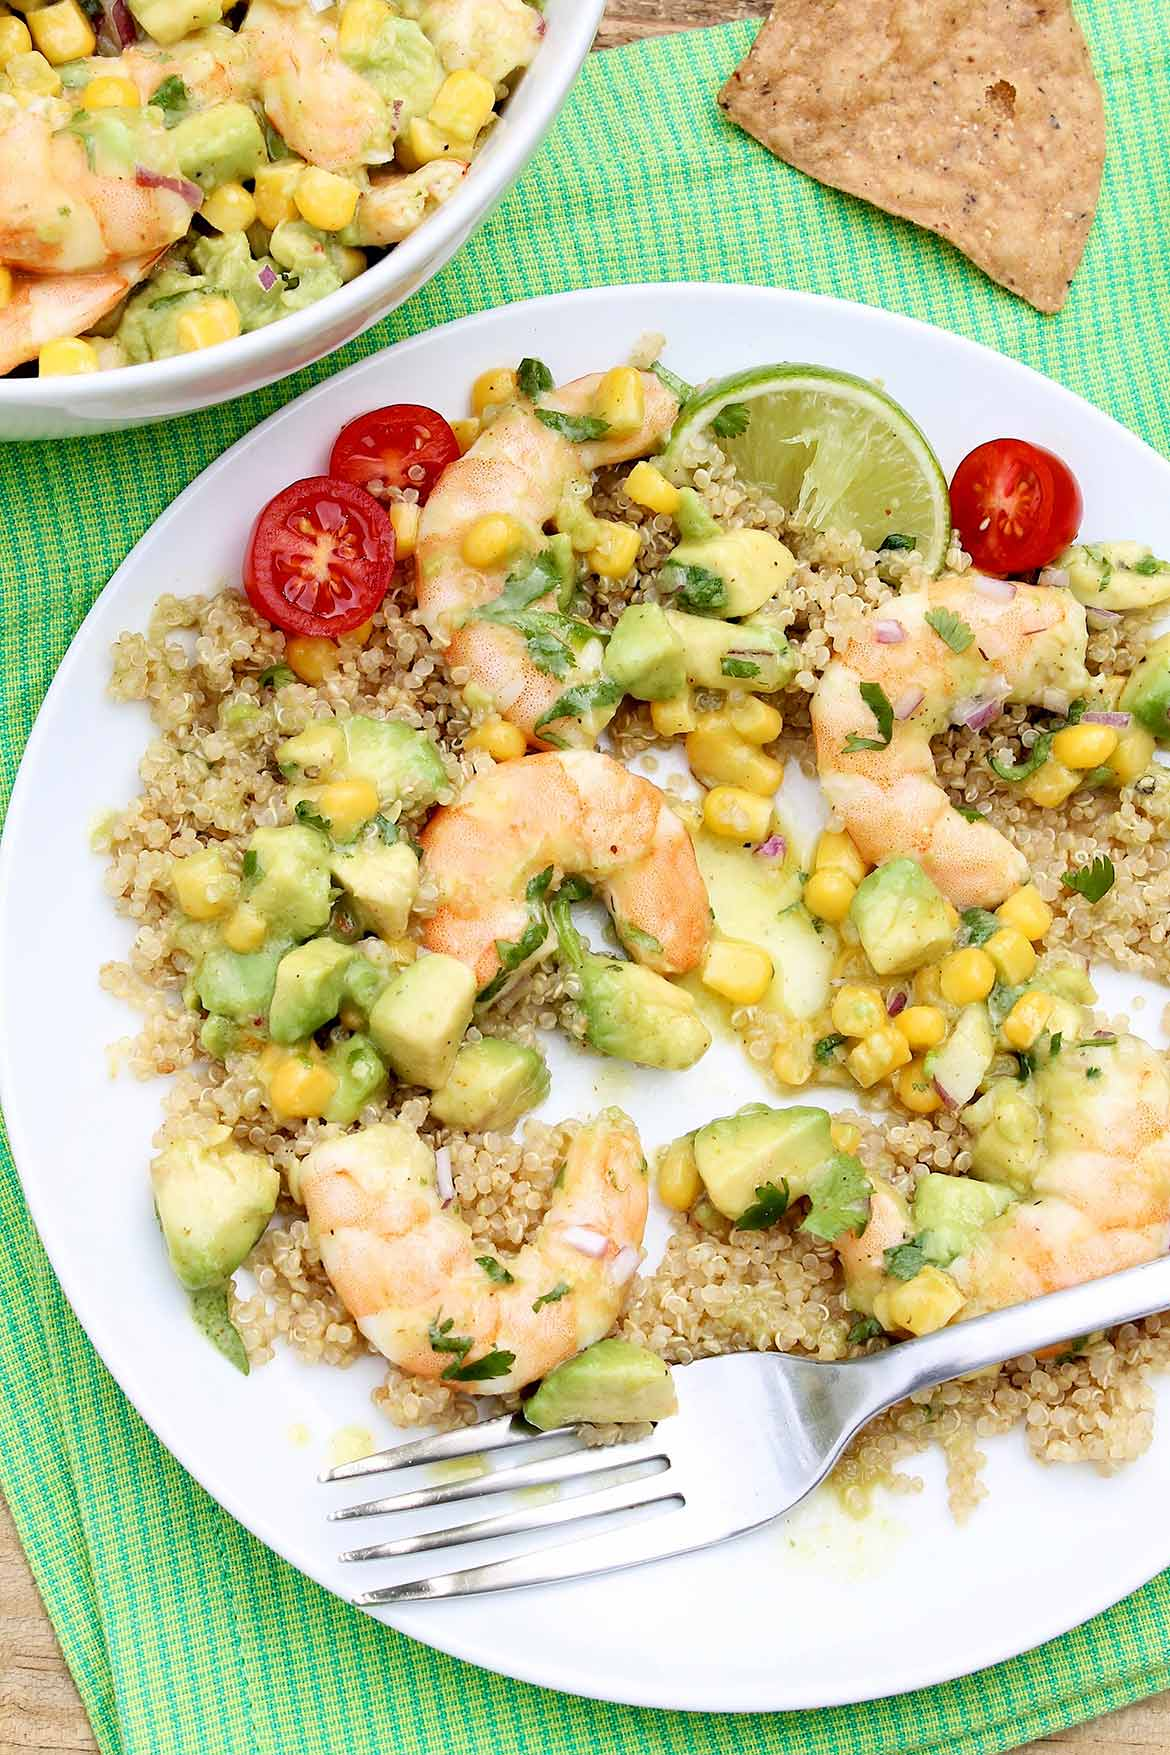 Effortless to pull together with a gourmet feel, Honey Lime Shrimp with Avocado & Corn is a go-to entertaining option yet easy enough for busy weeknights.  Light and healthy, too!